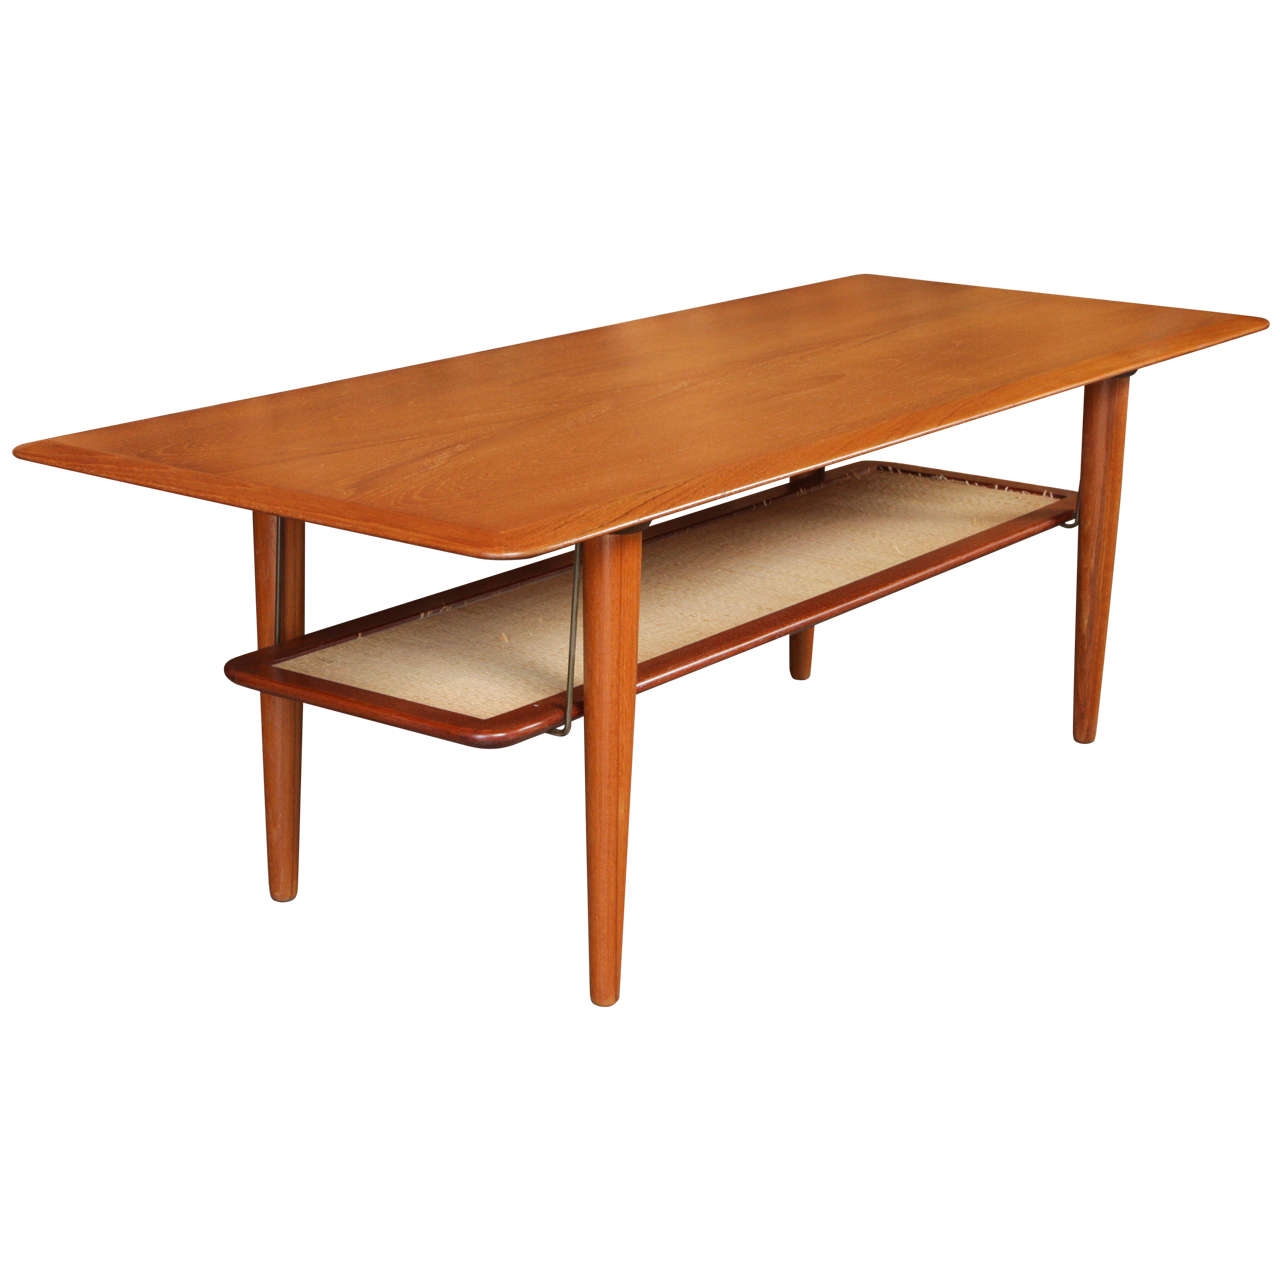 Mid century danish modern peter hvidt teak coffee table at 1stdibs Modern teak coffee table